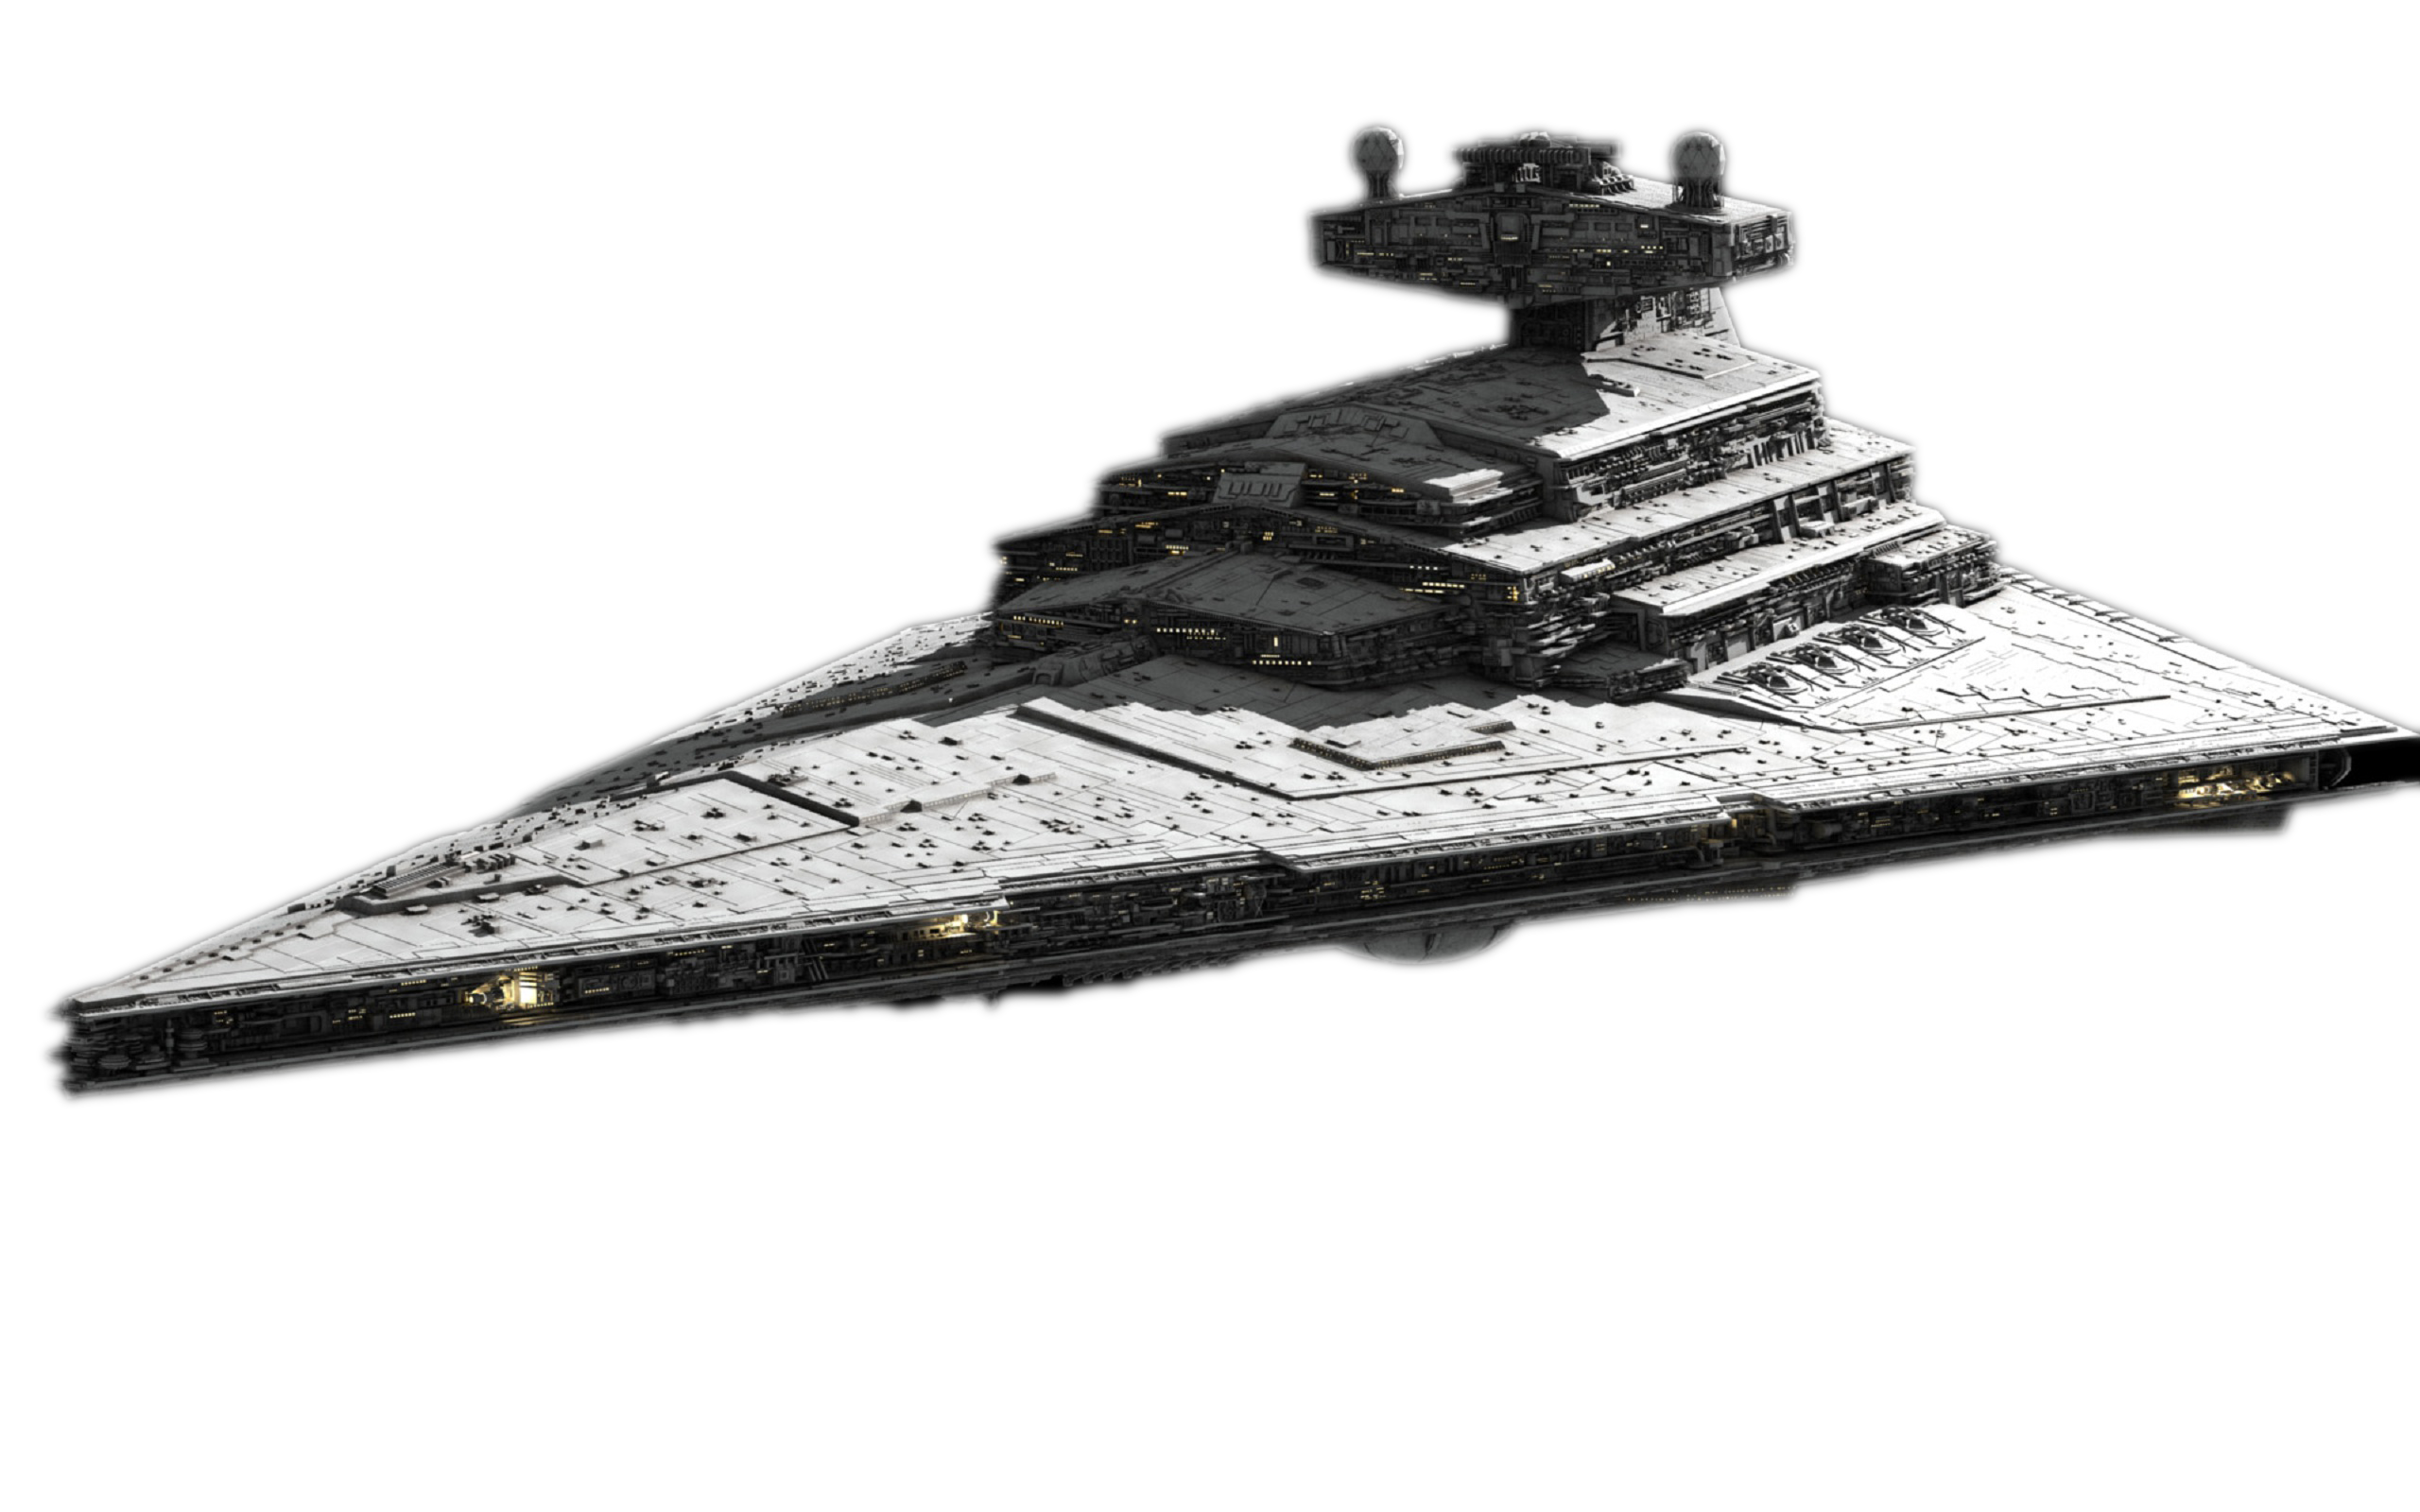 graphic download ship transparent imperial #115593858